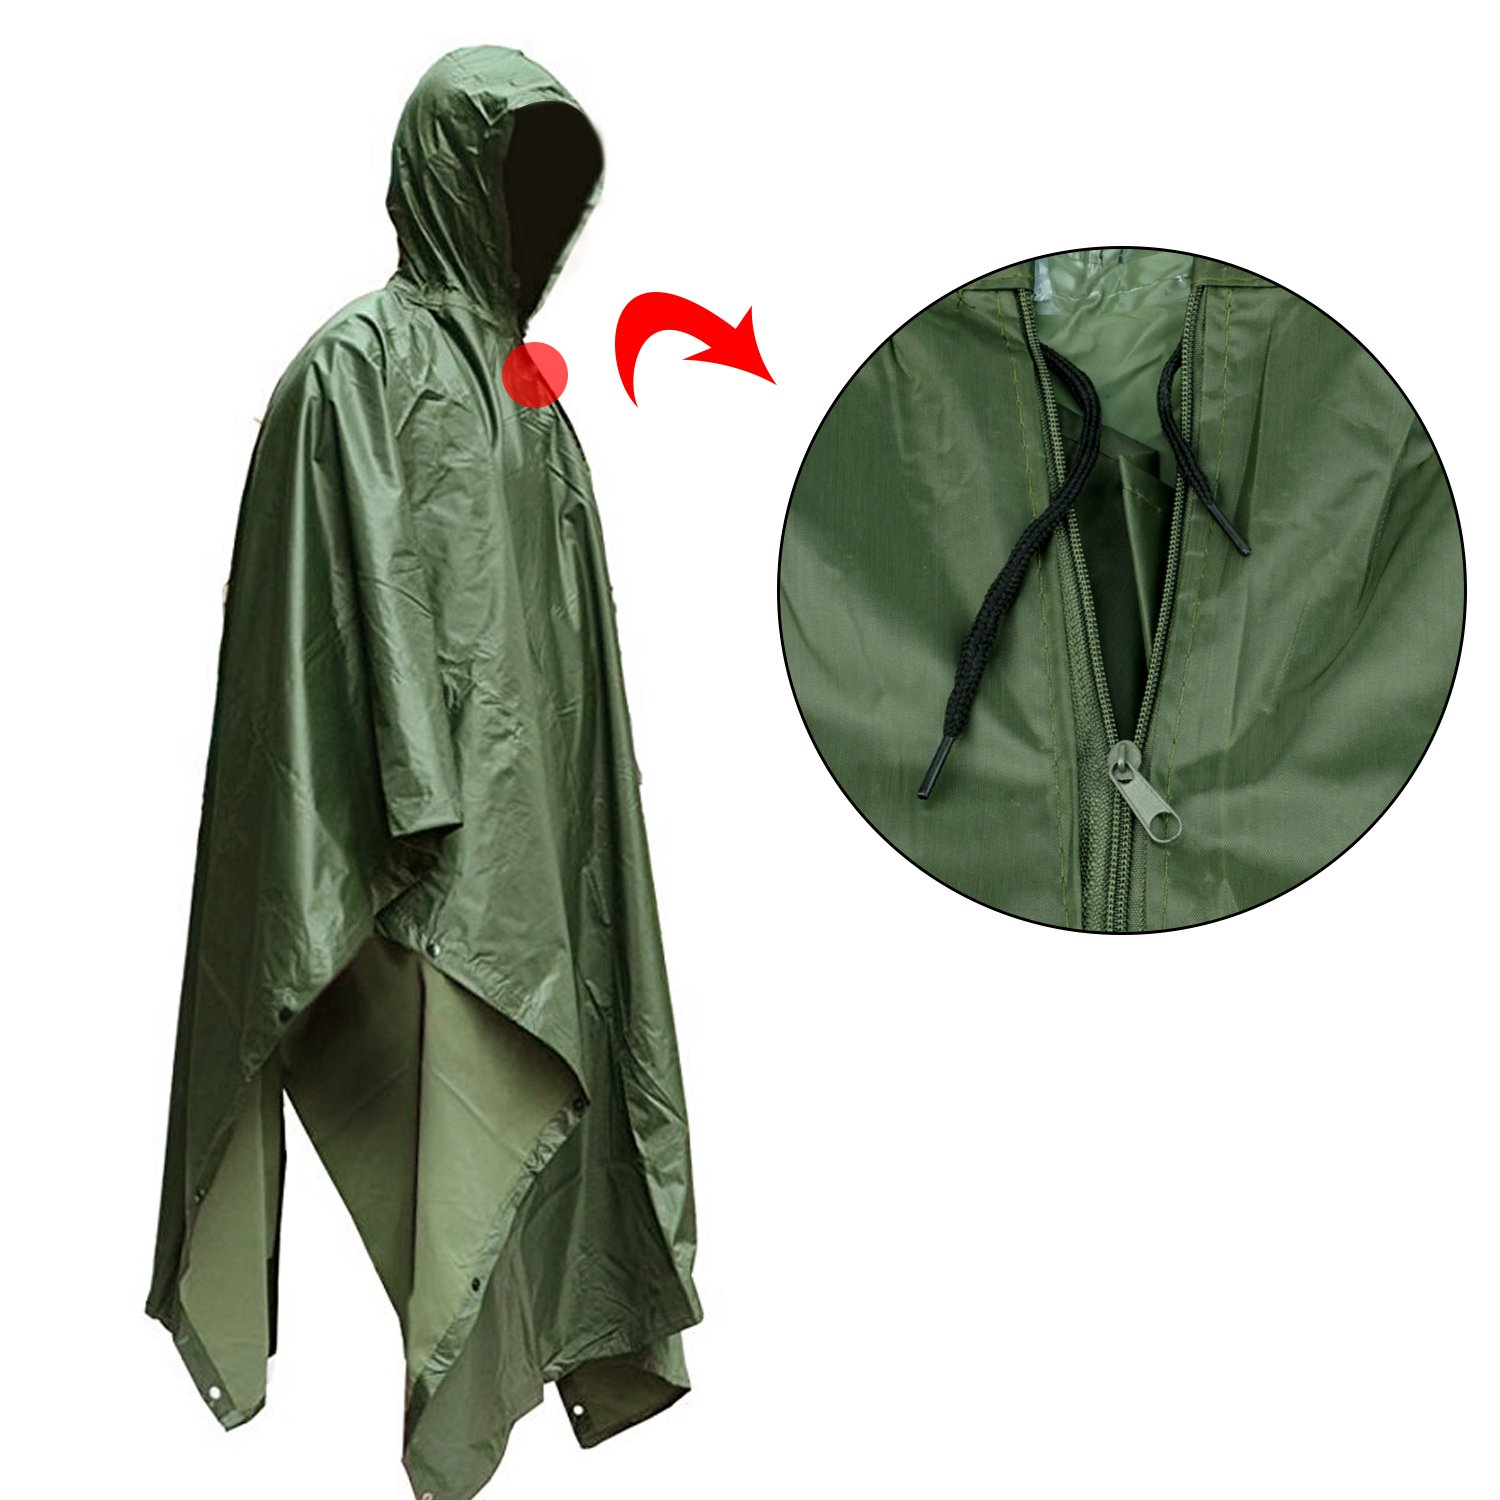 Waterproof Raincoat,Tent Ground Sheet Mat,Sunshade Tarp,Perfect for Outdoor Activities ElifeAcc Multifunctional Rain Cape Hooded Poncho